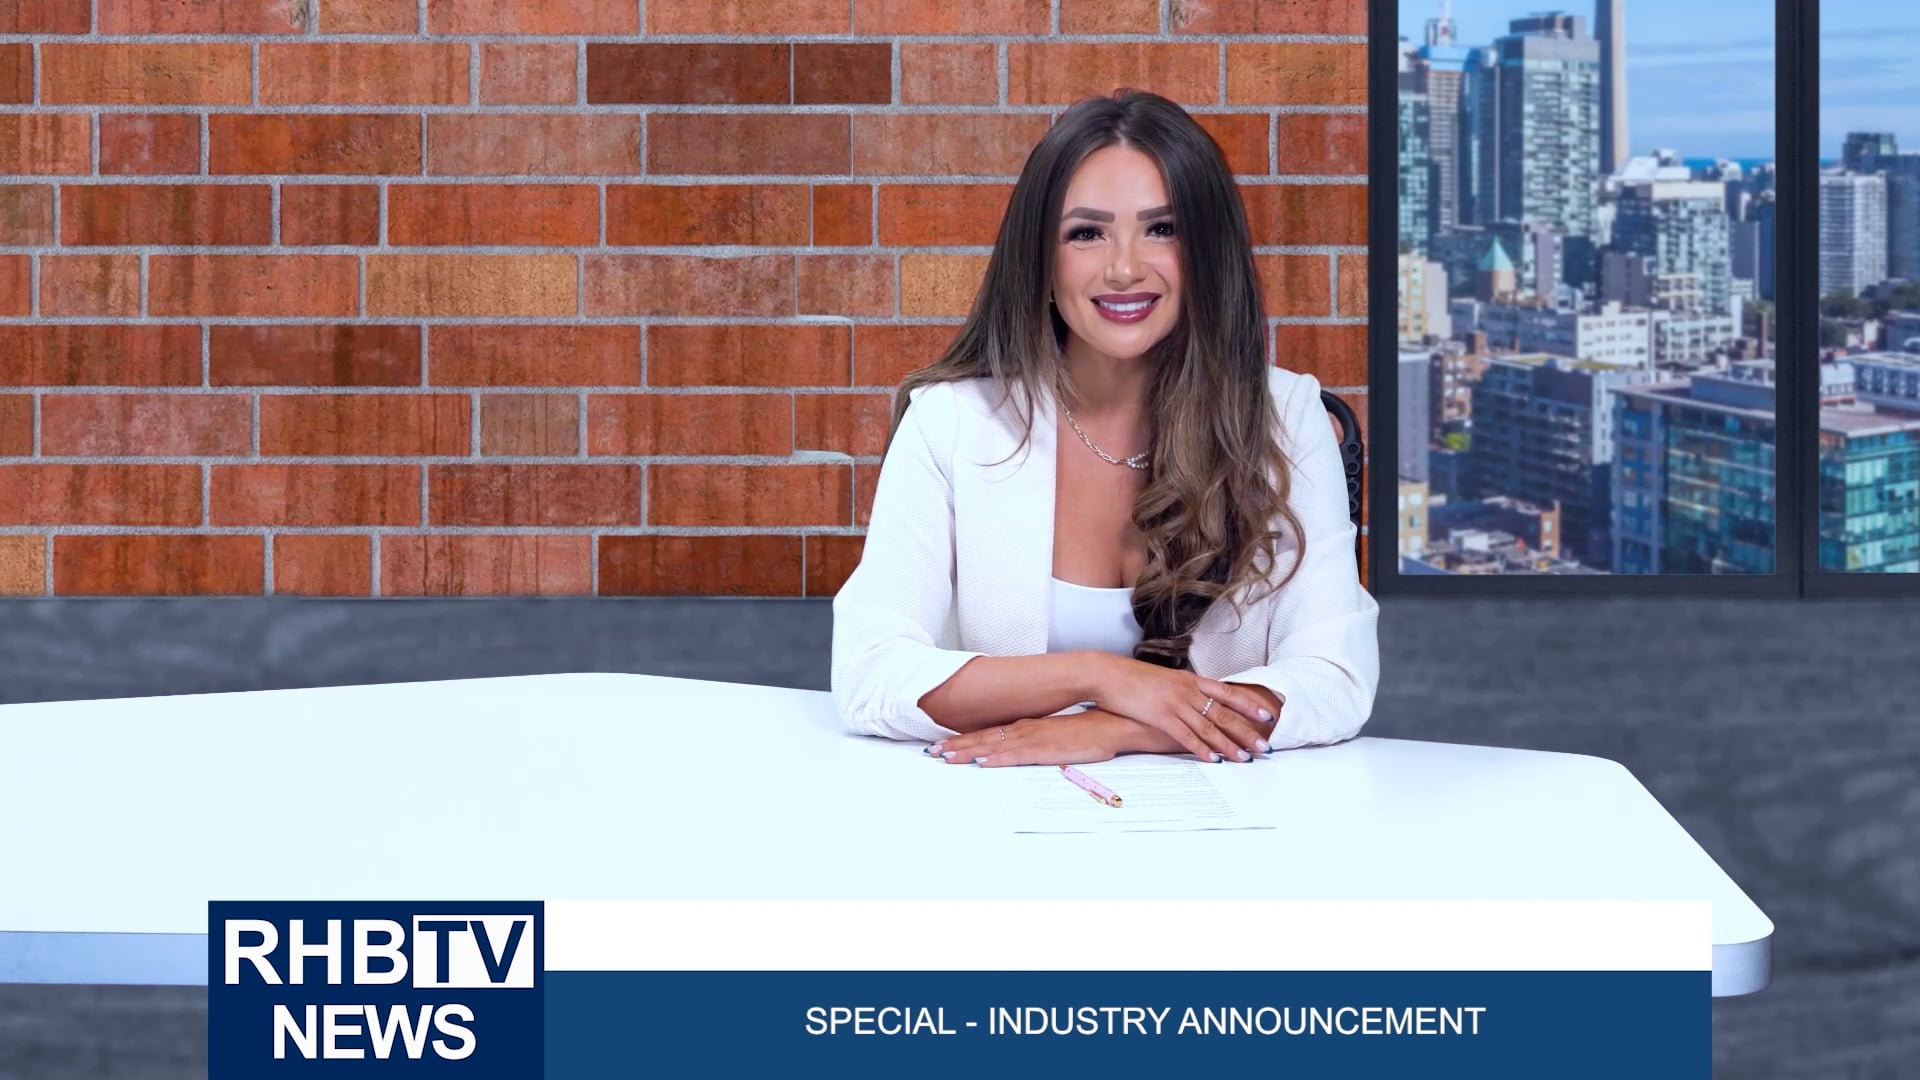 Special Industry Announcement